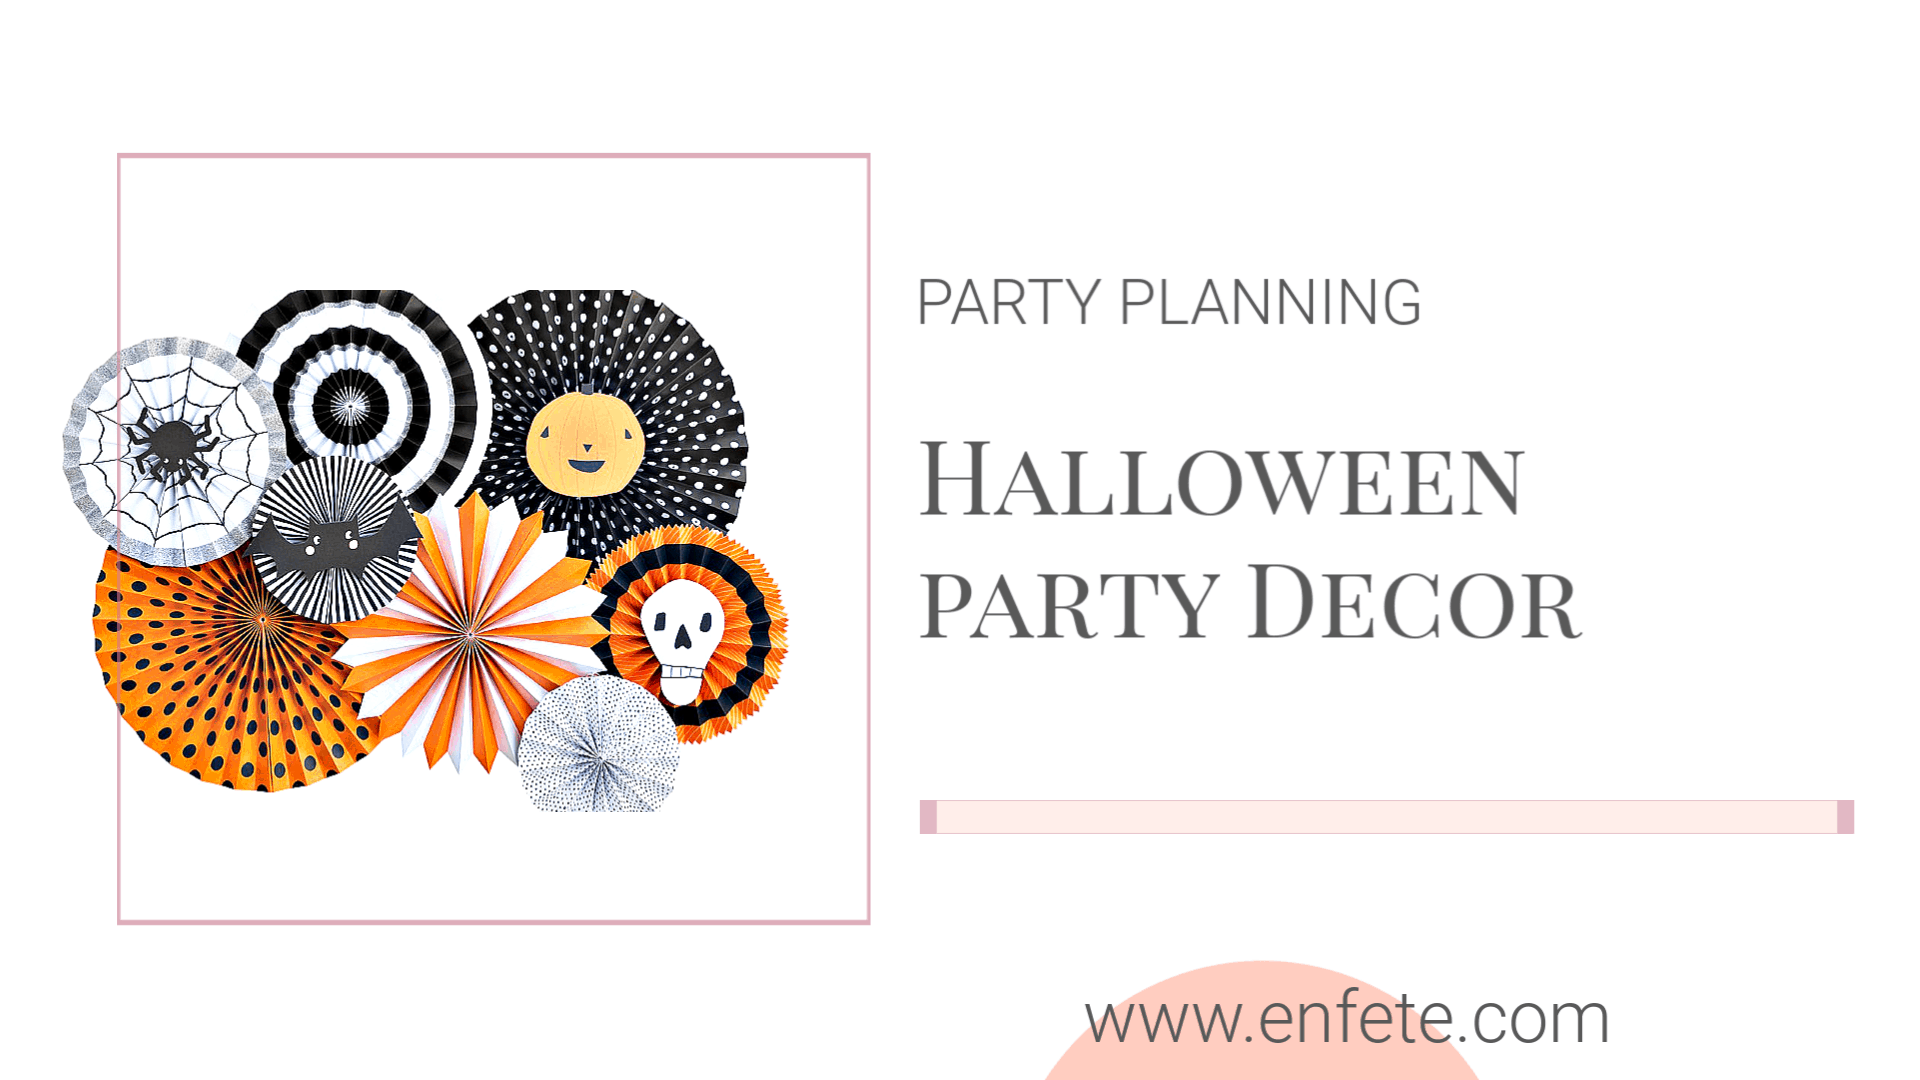 Halloween Party Decor for 2019